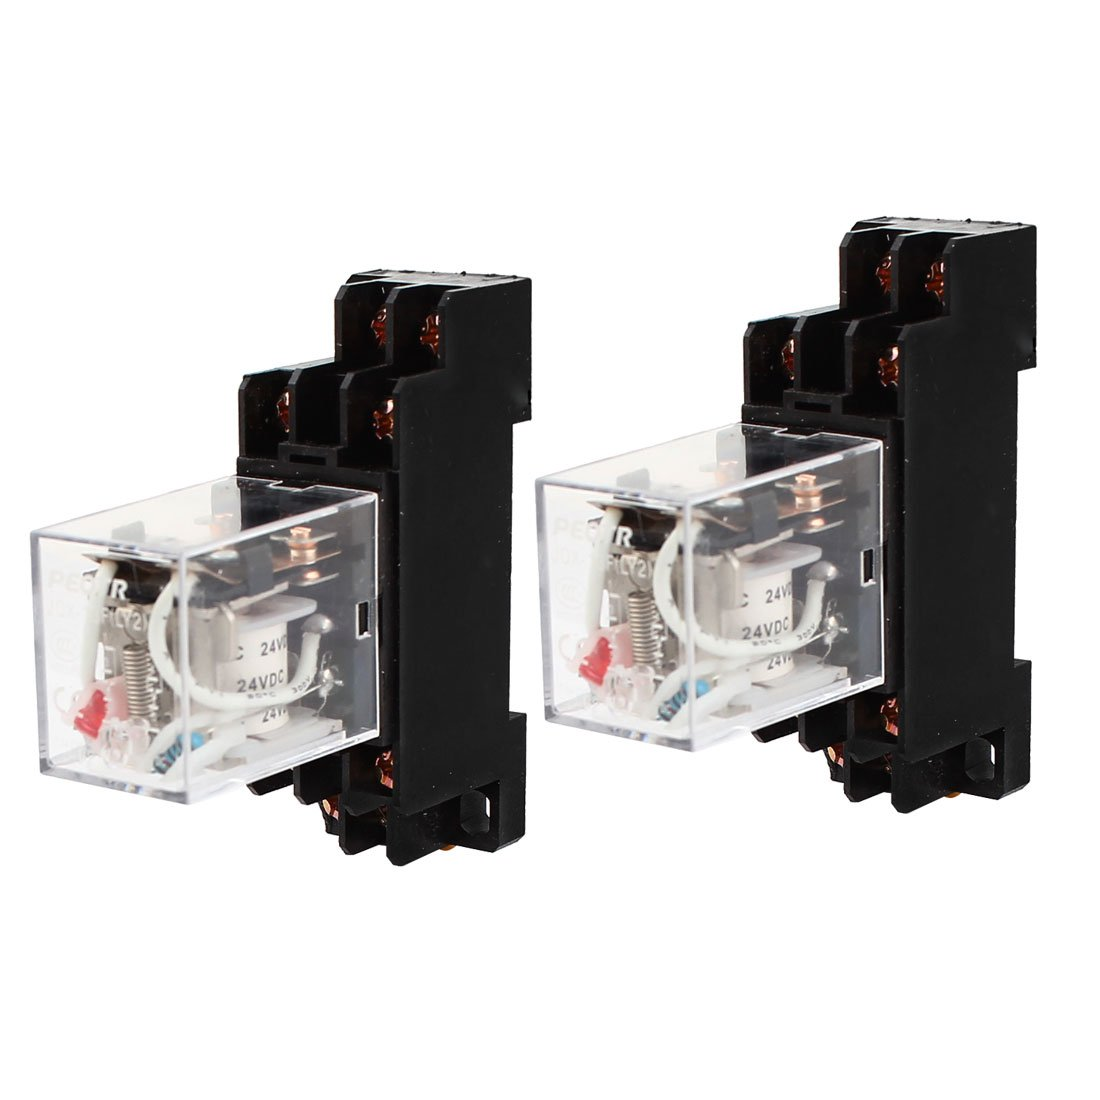 Uxcell a14122000ux0207 Coil Power Relay DPDT DIN Rail Mounted JQX-13F with Socket, 2 Piece, DC 24V, 8 Pin, 35 mm